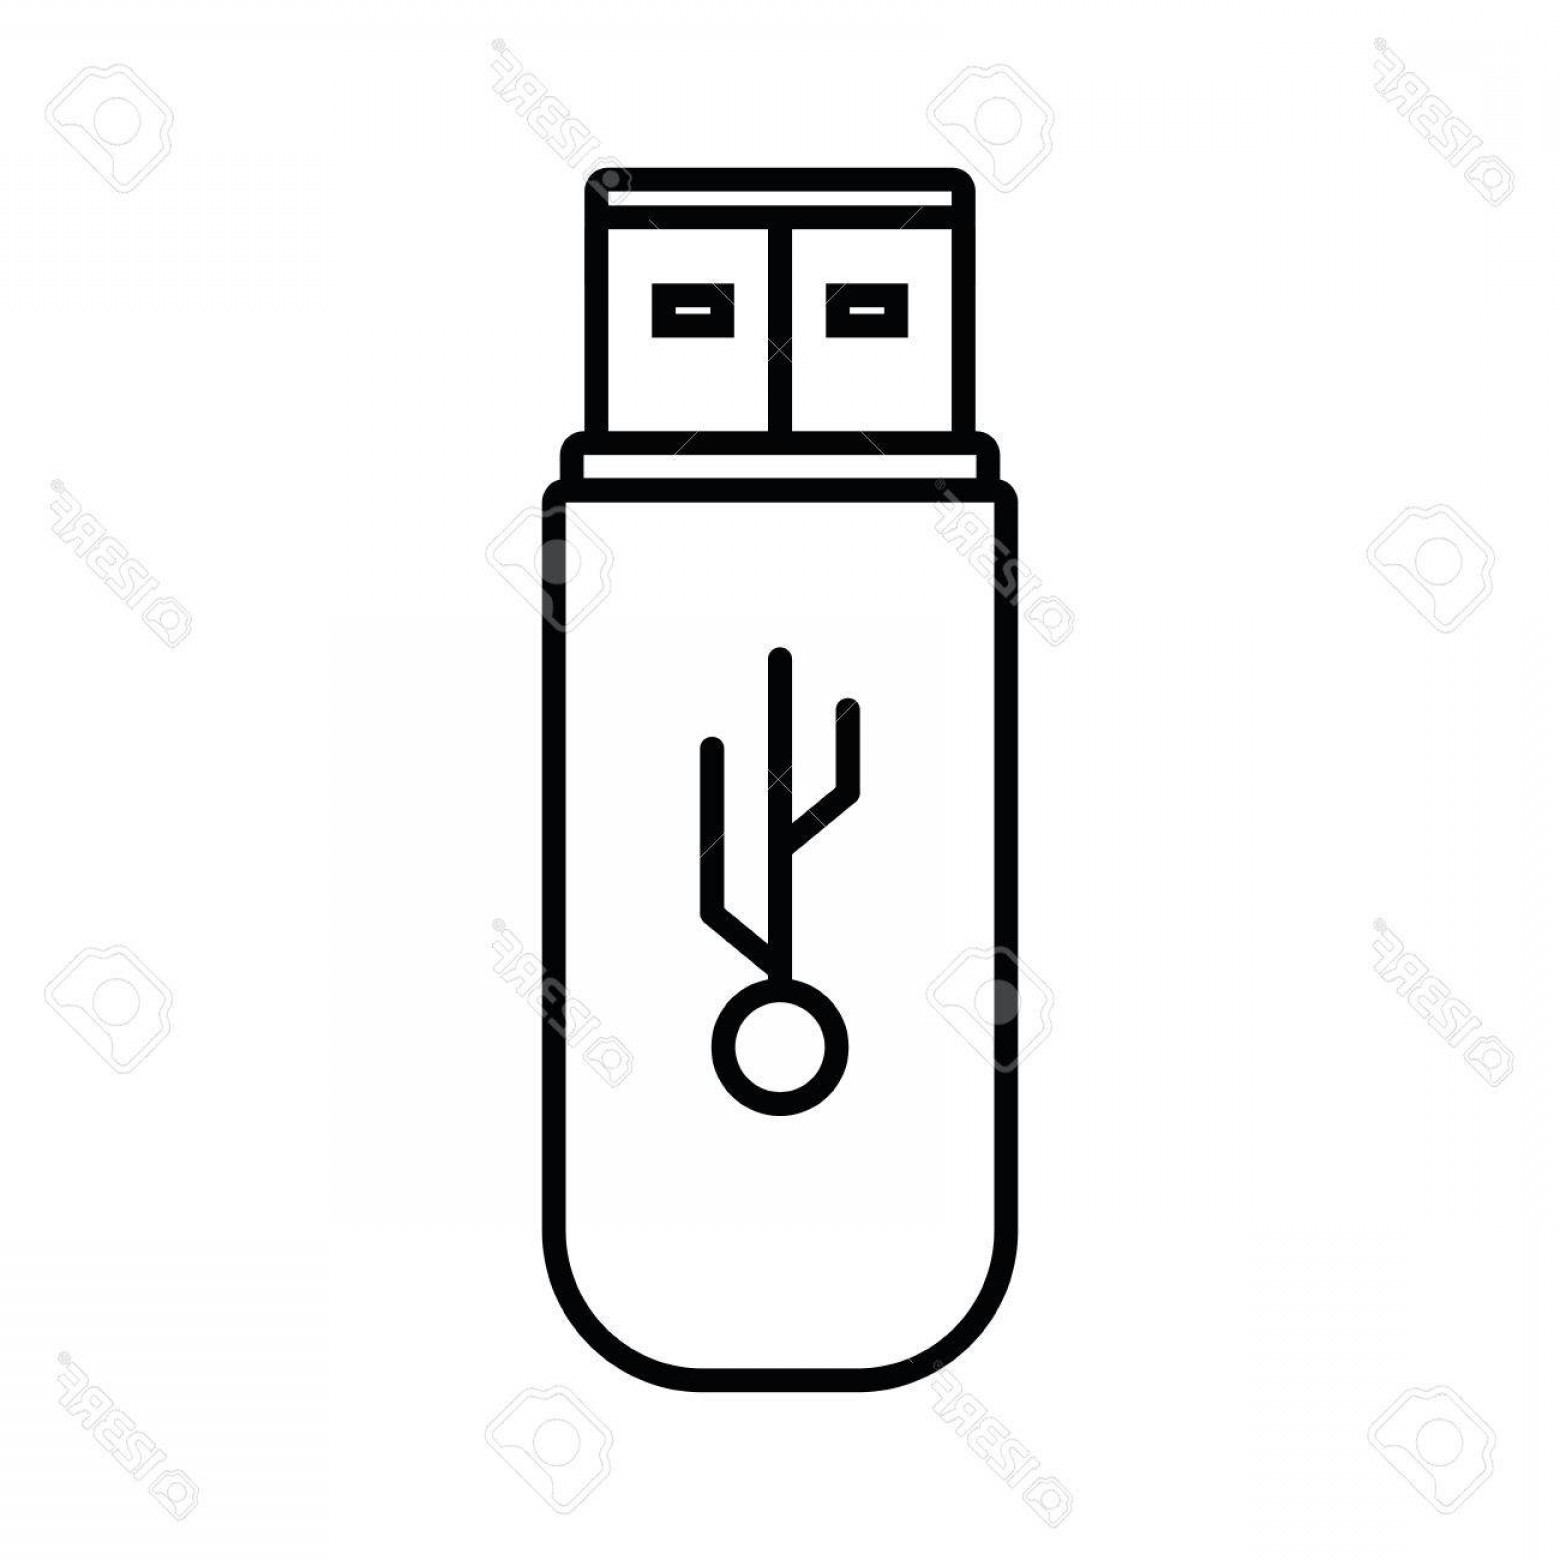 USB Icon Vector: Photostock Vector Usb Memory Storage Isolated Icon Vector Illustration Design